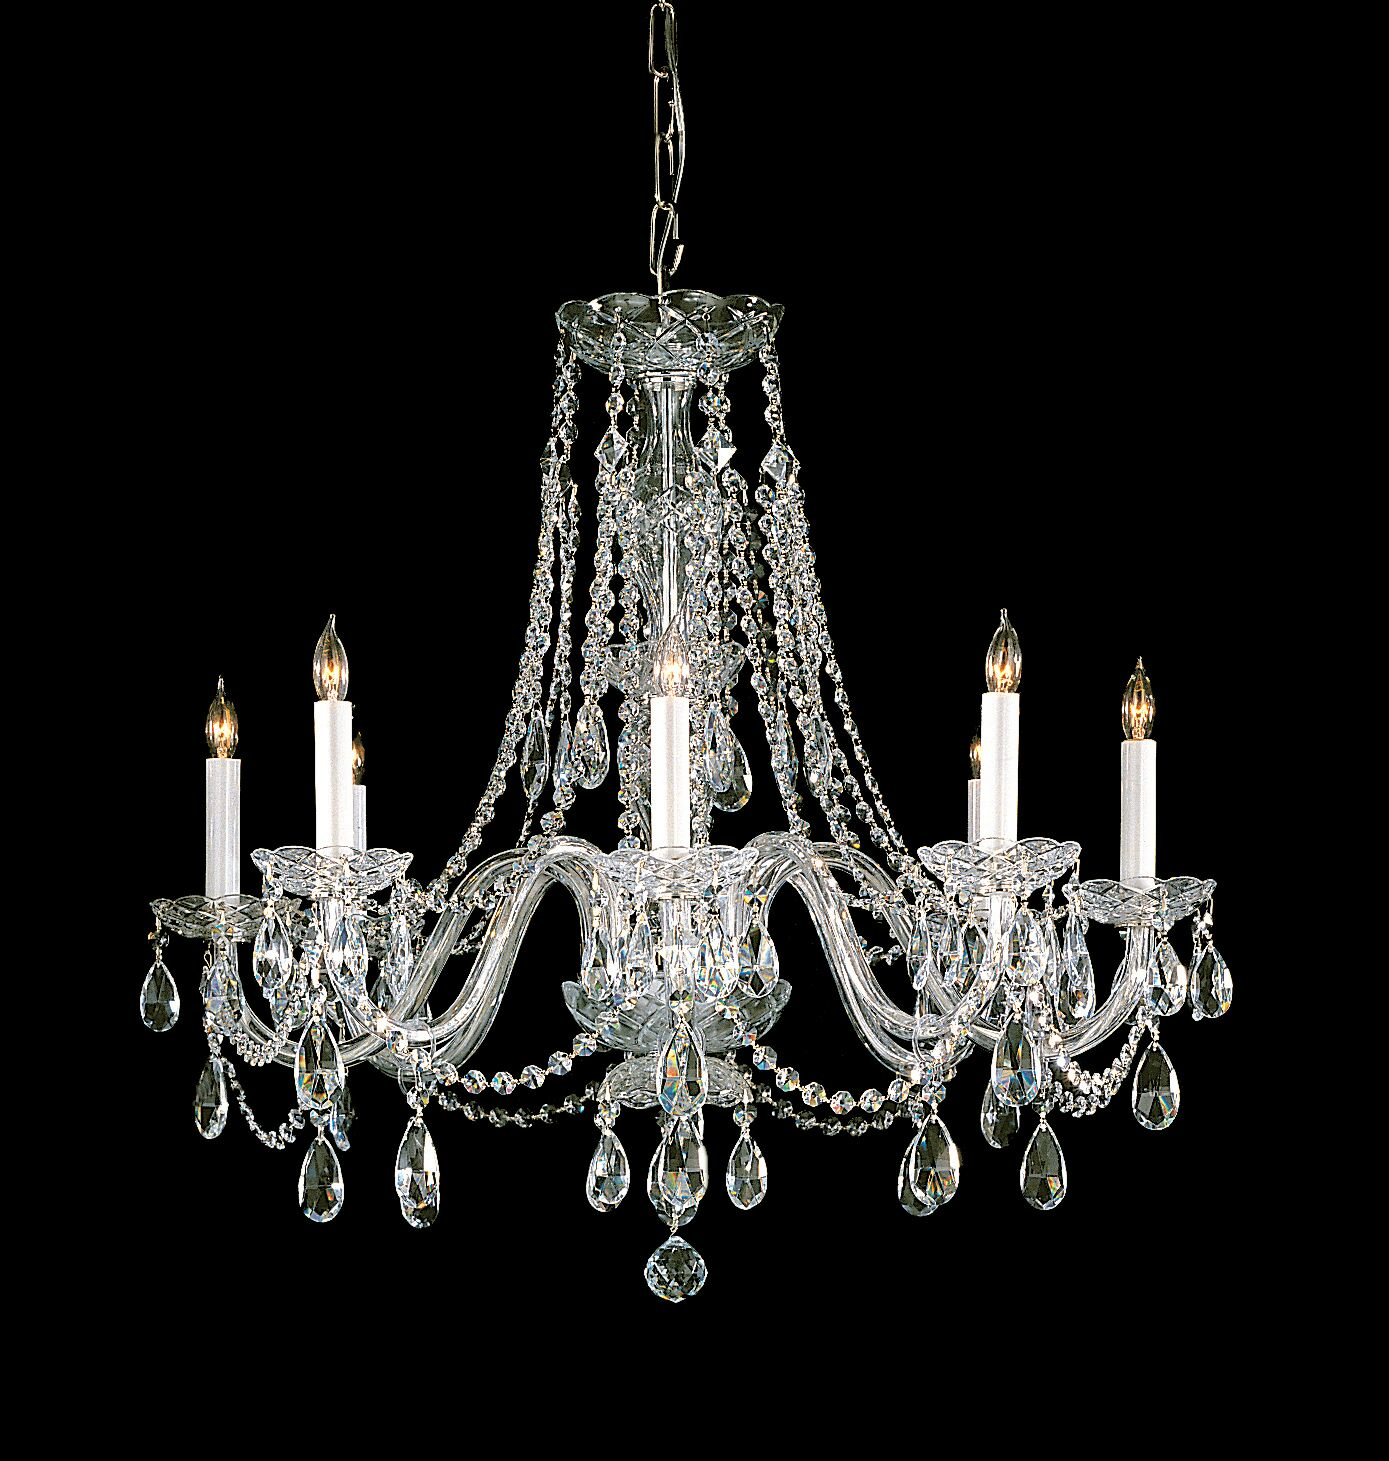 Milan 8-Light Candle Style Chandelier Crystal Type/Finish: Swarovski Spectra/Polished Brass